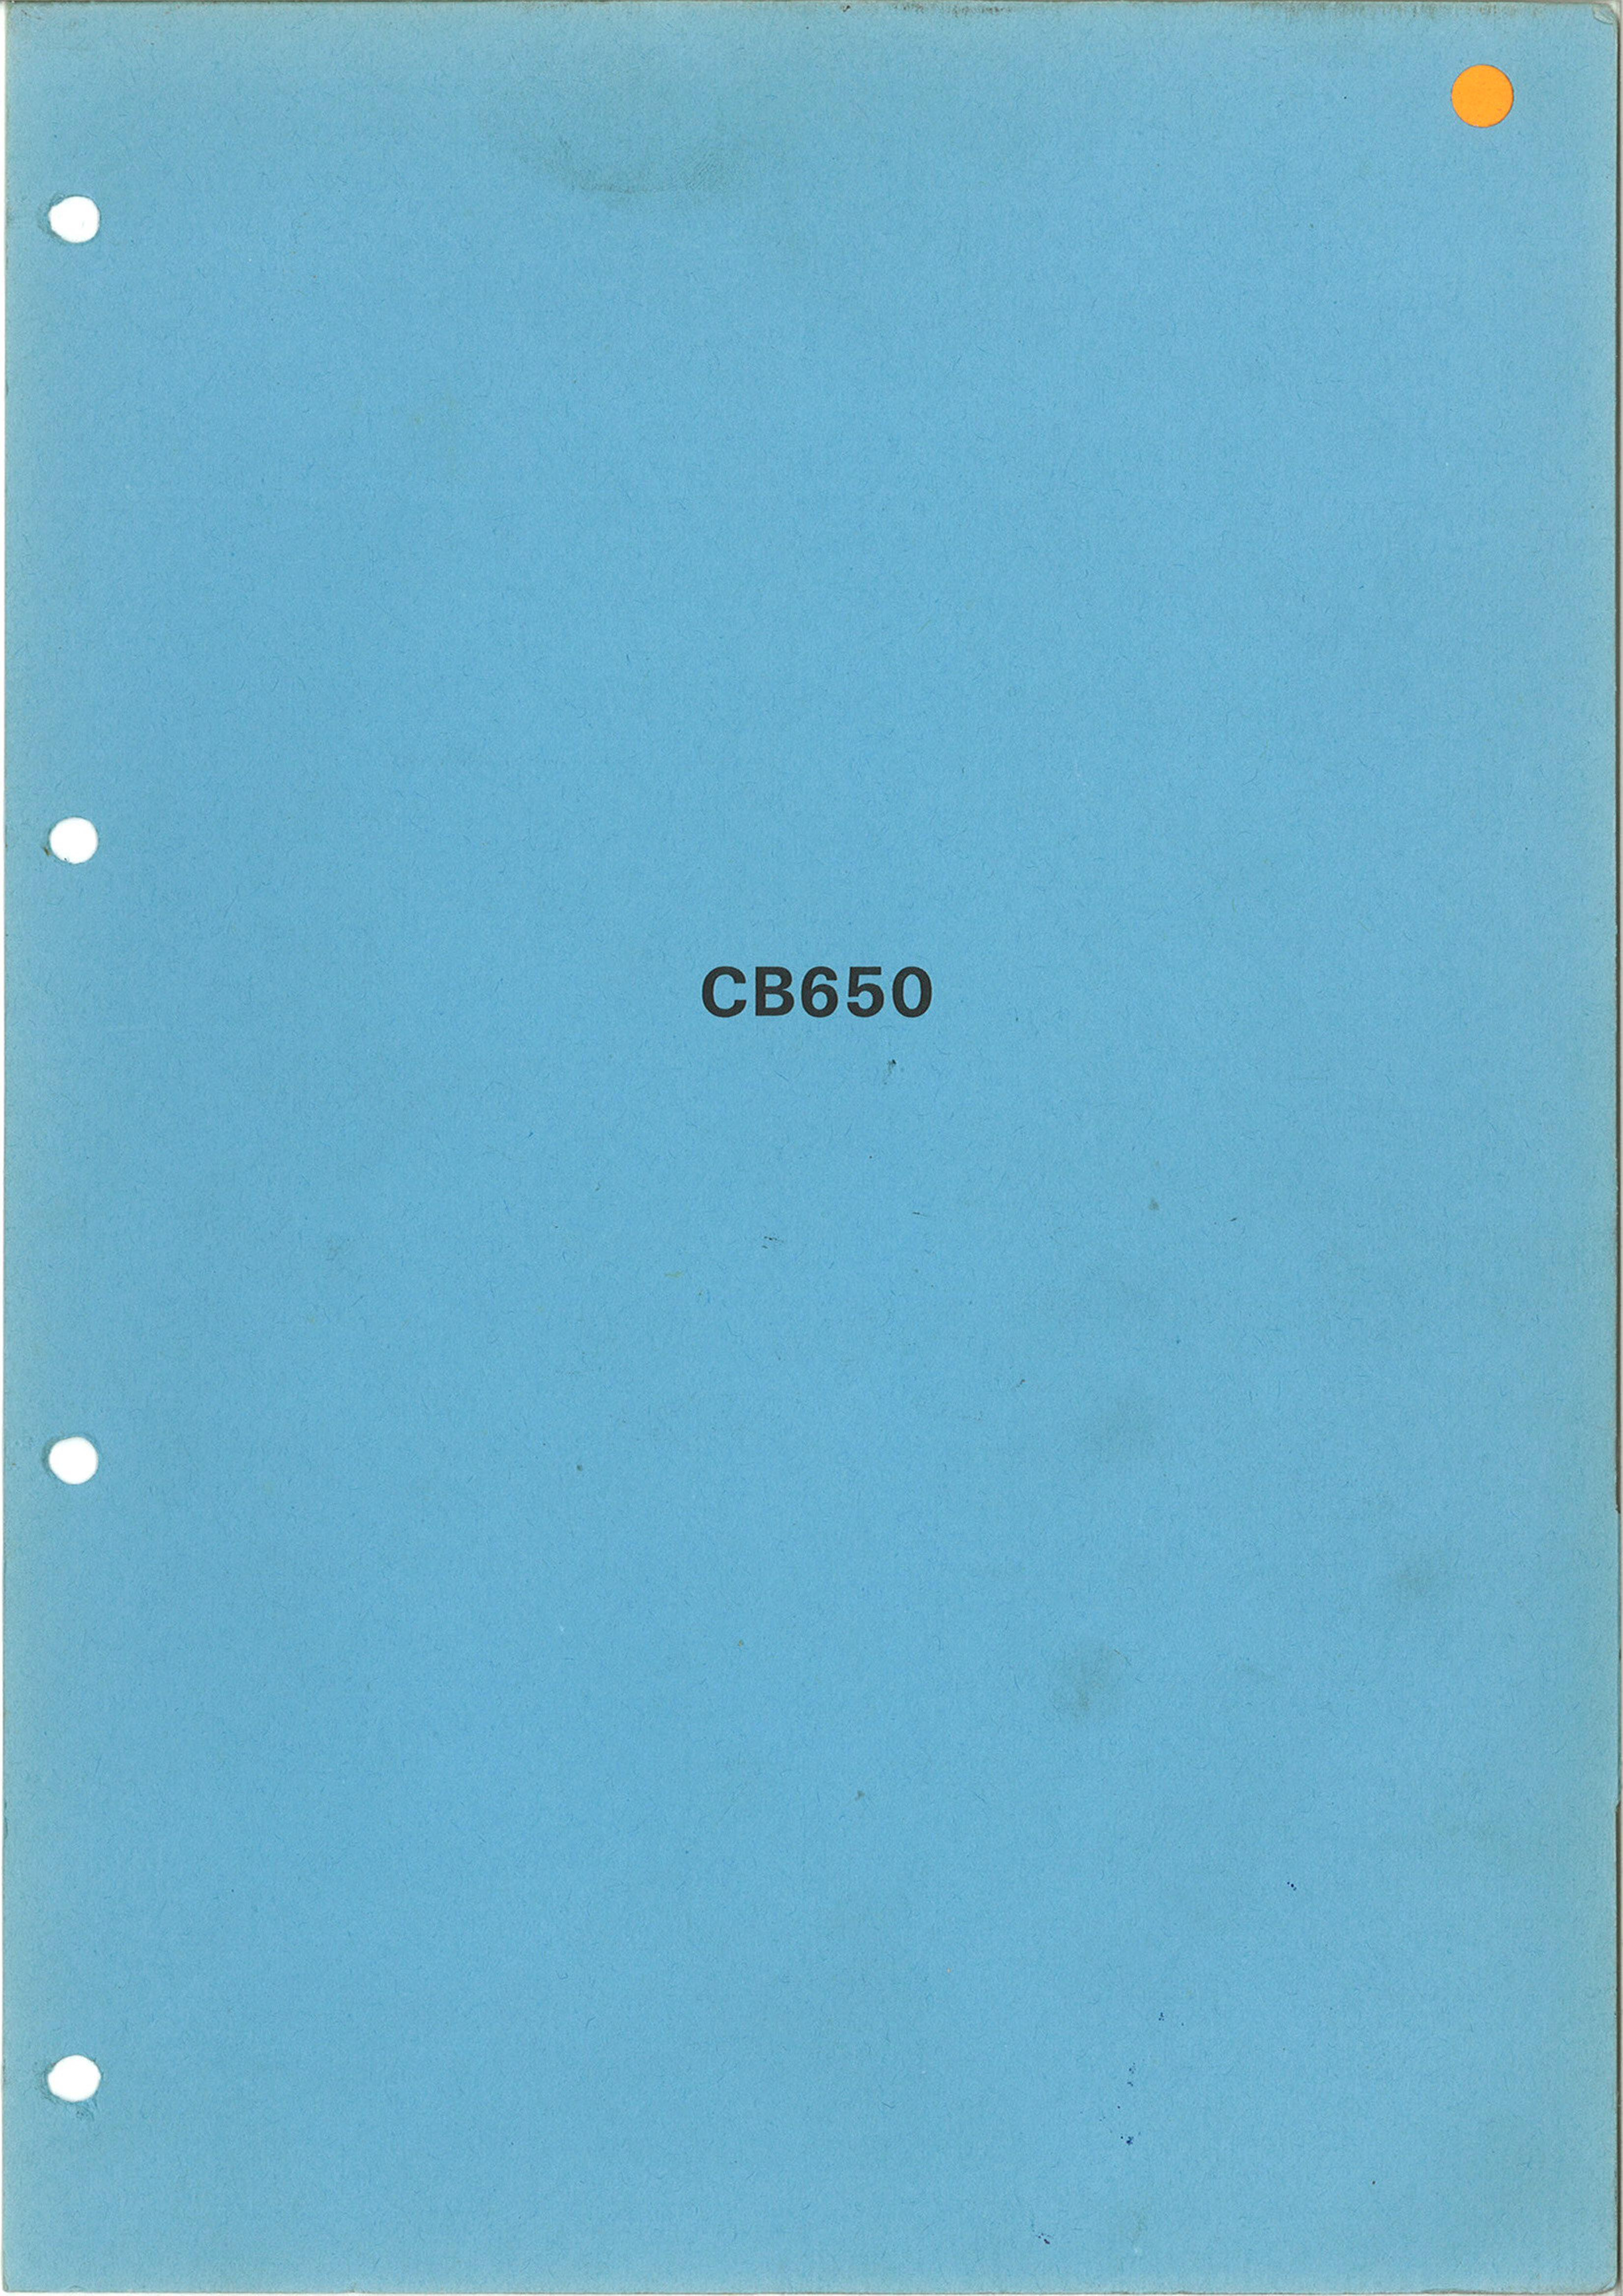 Workshop Manual for Honda CB650